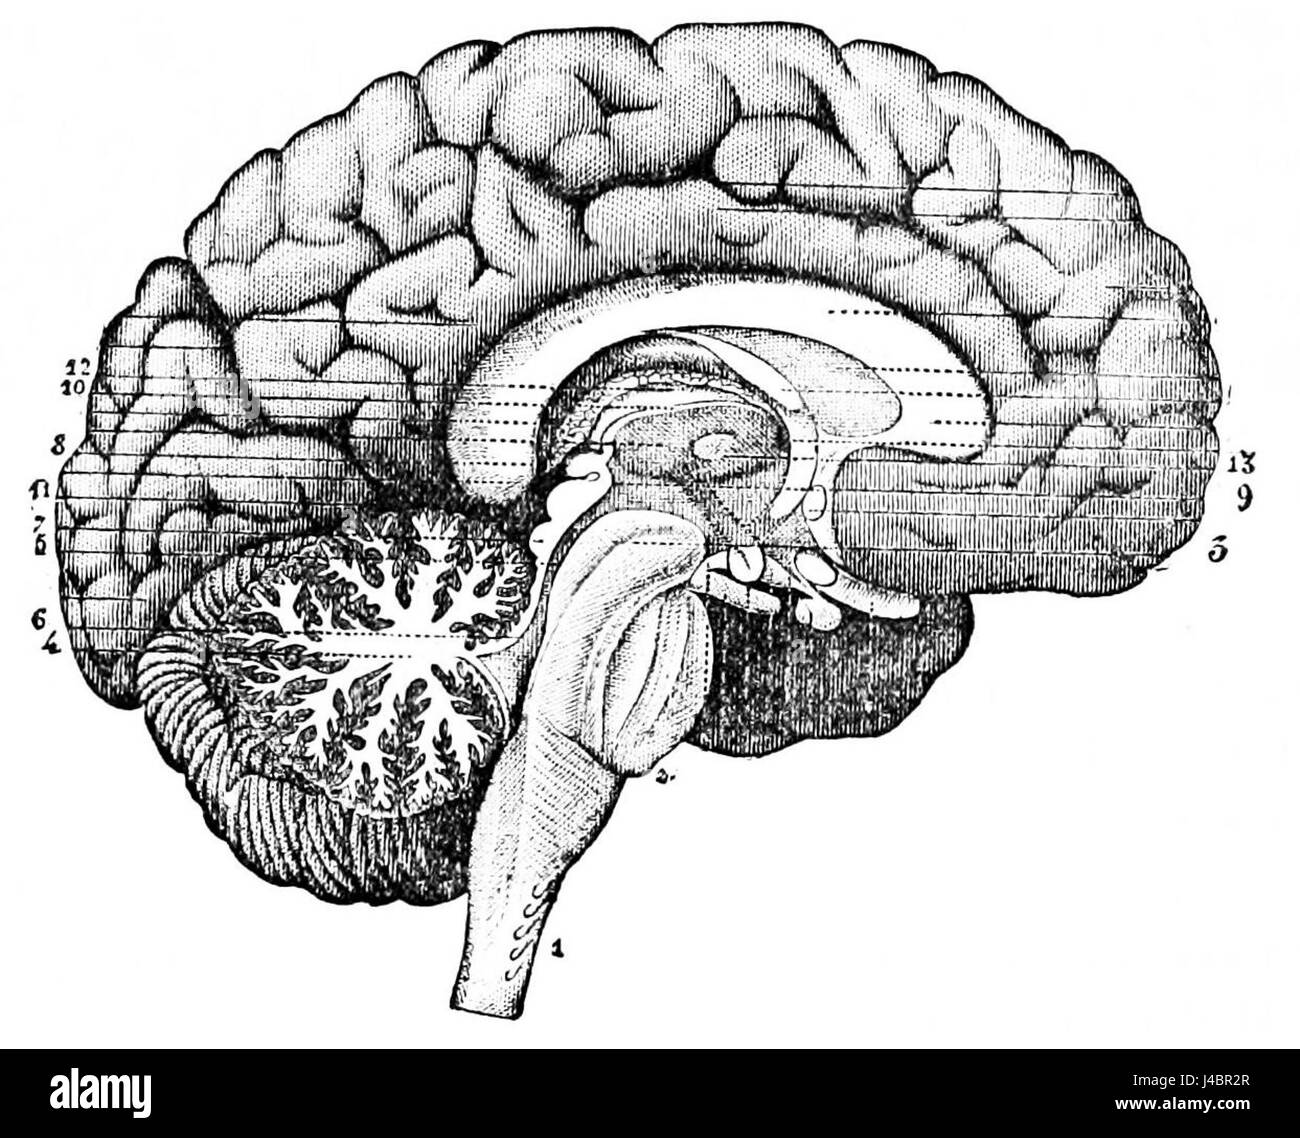 Section Of The Brain Stockfotos & Section Of The Brain Bilder ...